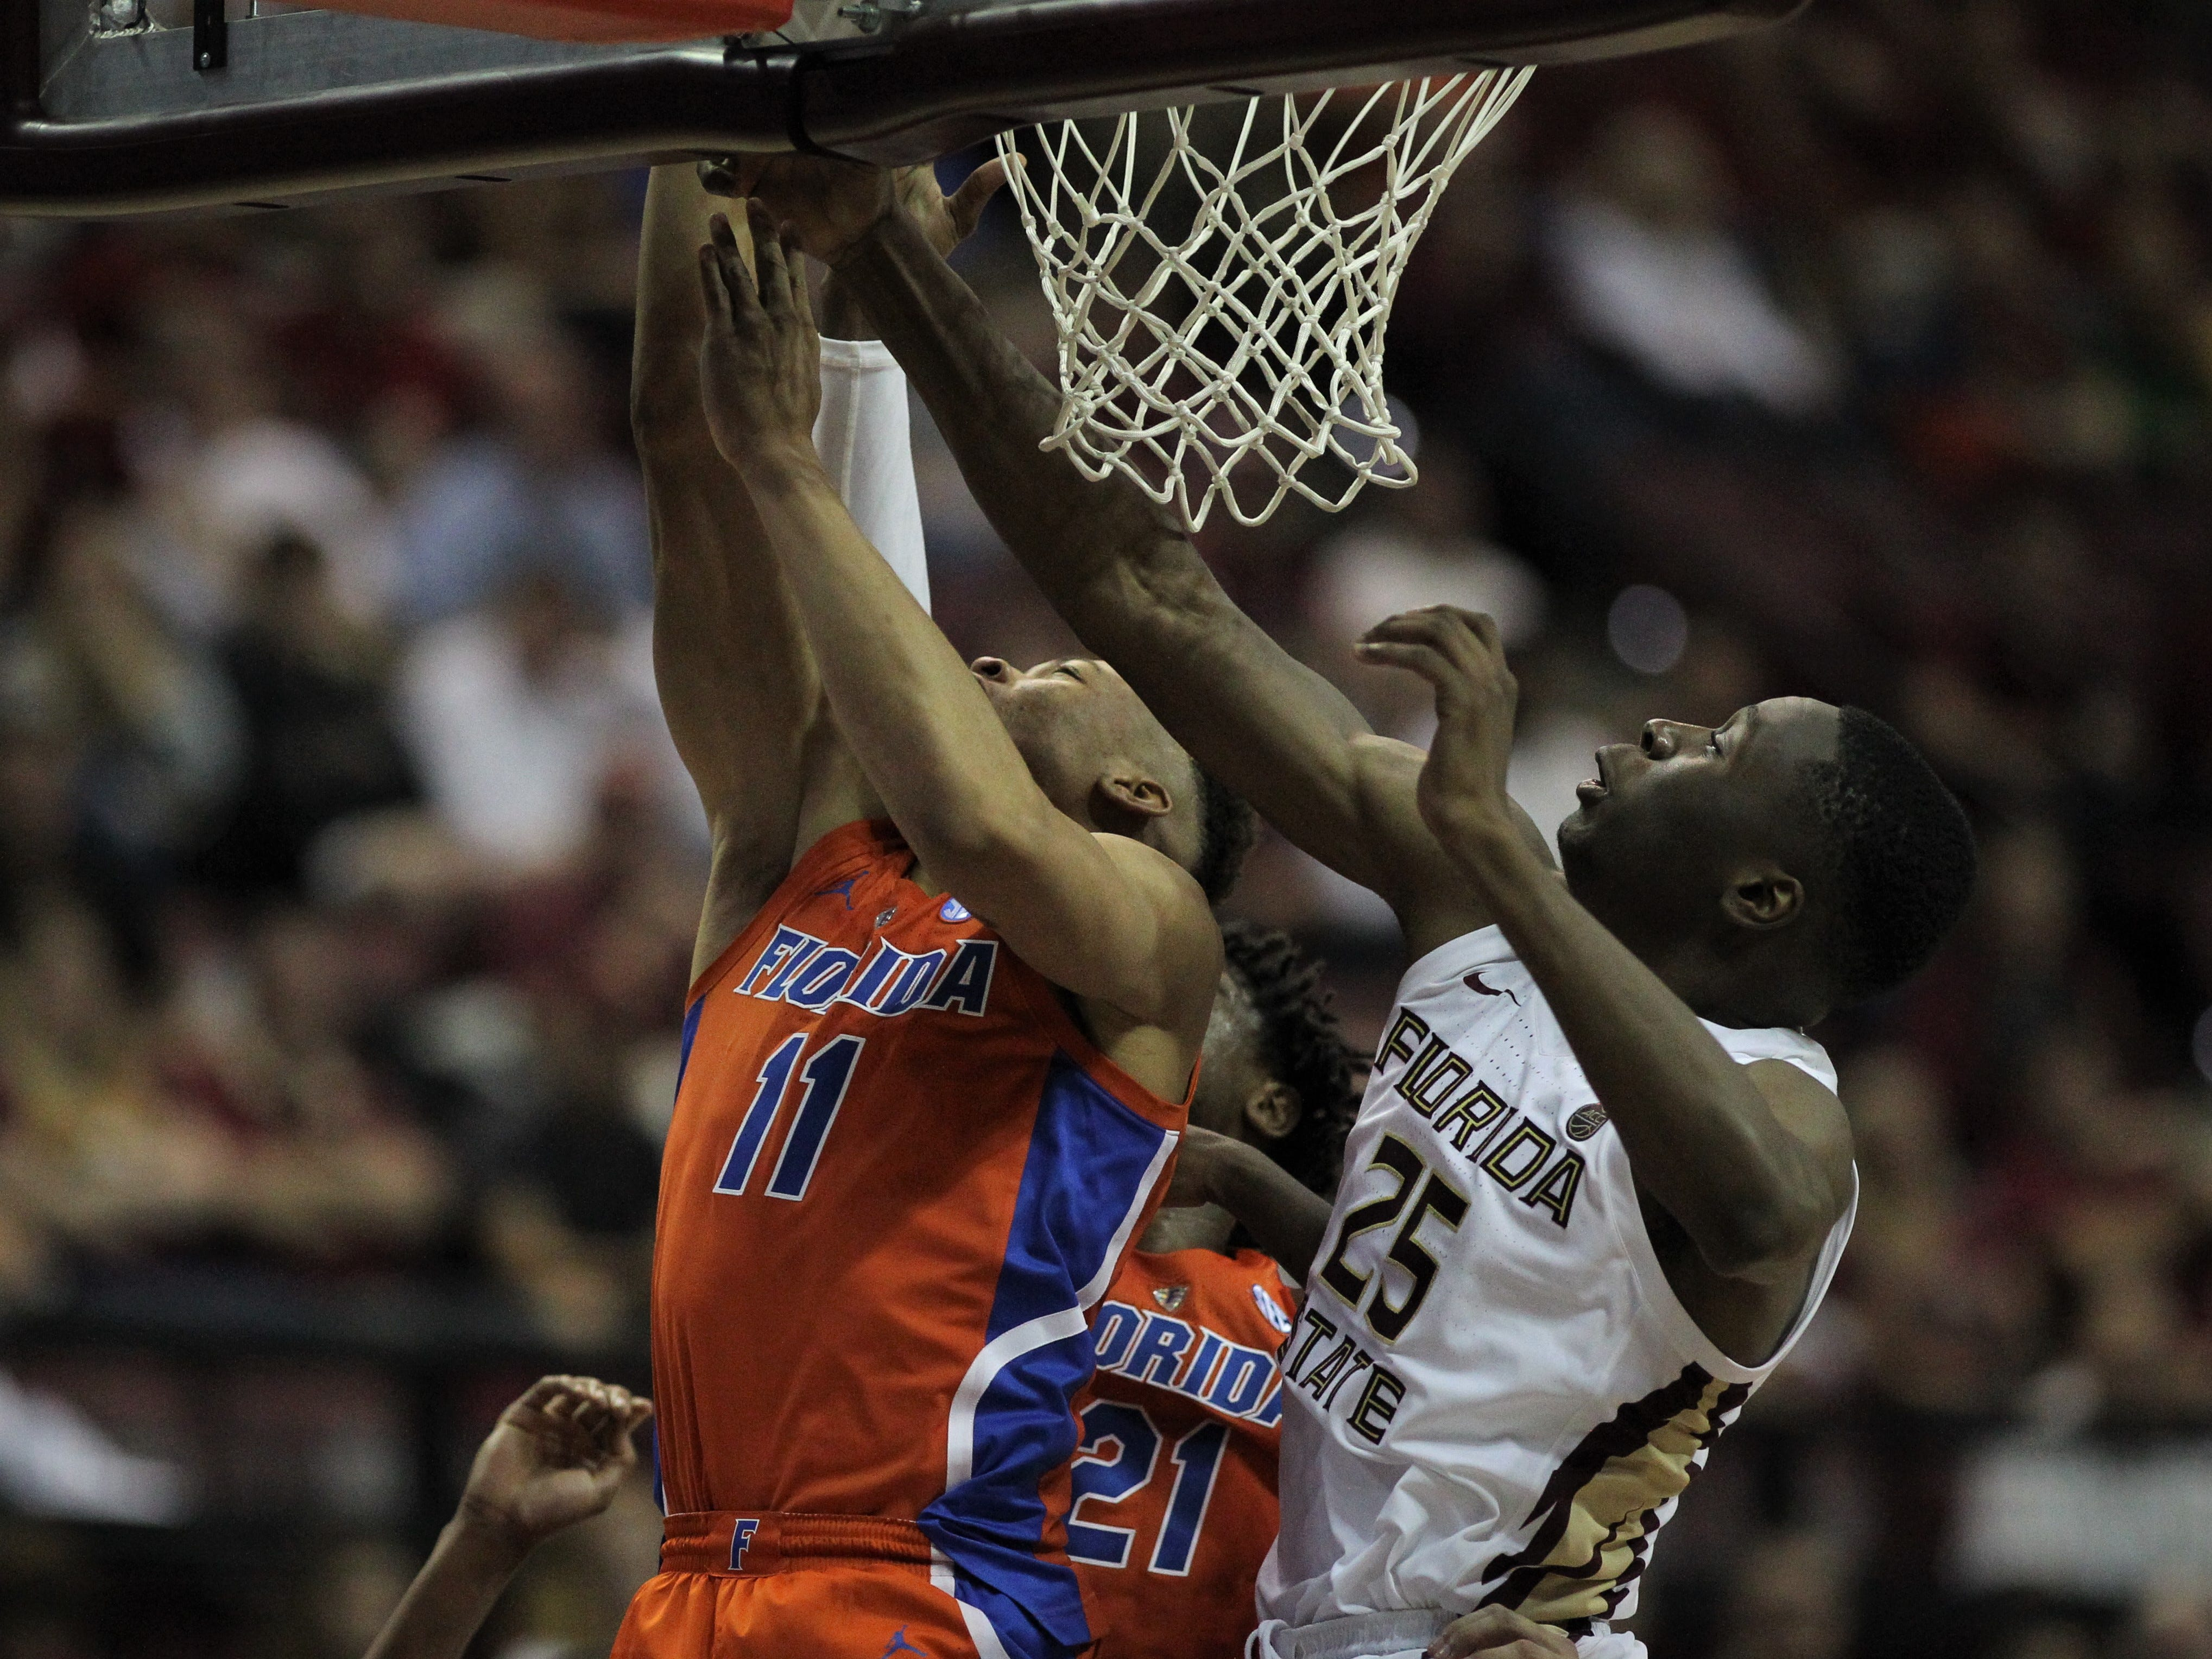 Florida's Keyontae Johnson has his layup disrupted by Florida State's Mfiondu Kabengele during the Sunshine Showdown game Tuesday at the Tucker Civic Center.